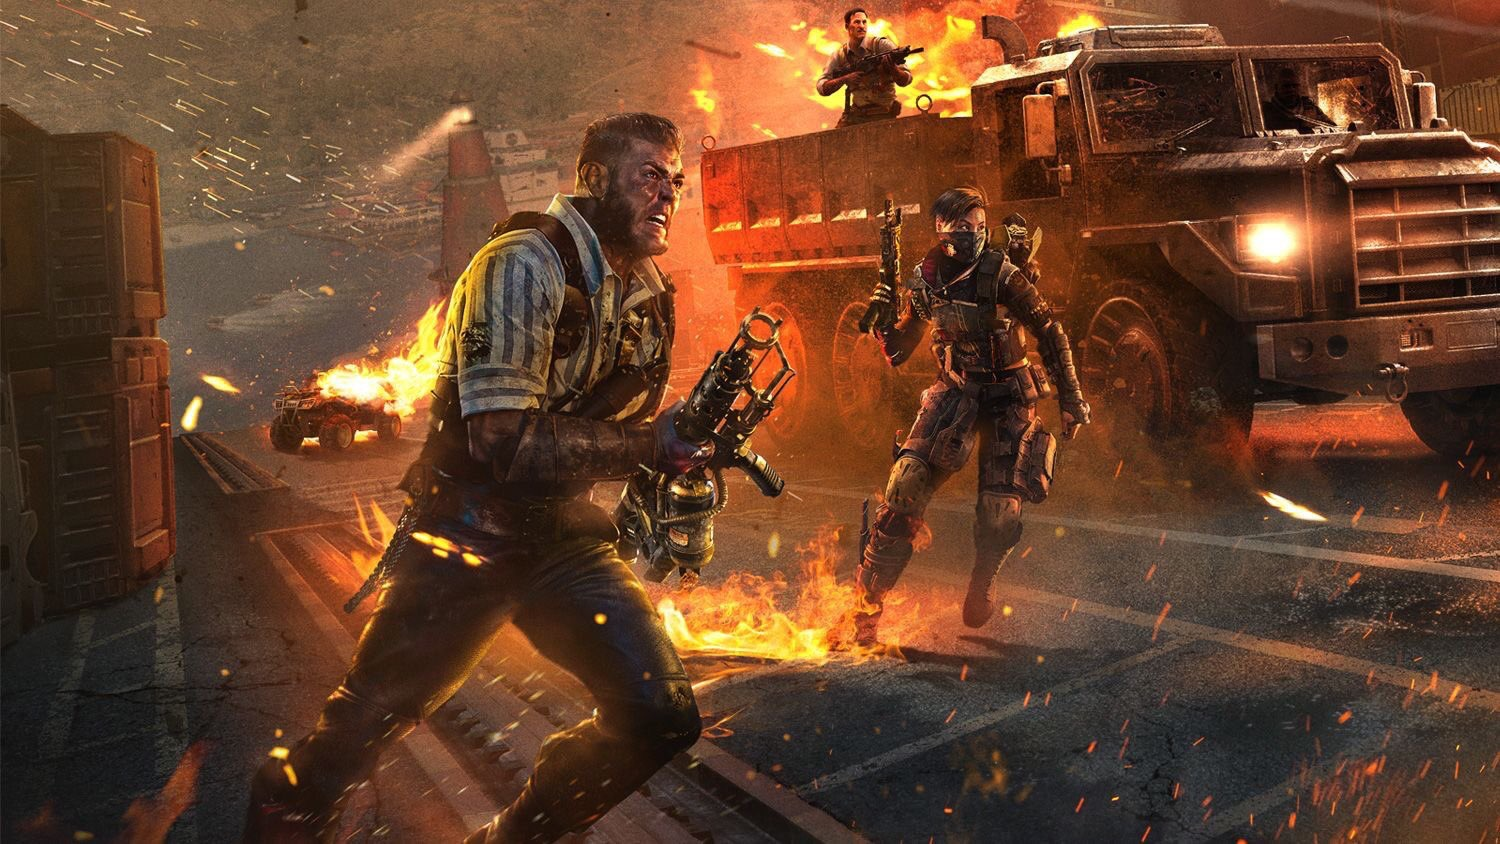 Call of Duty: Black Ops 4 was the most downloaded game on